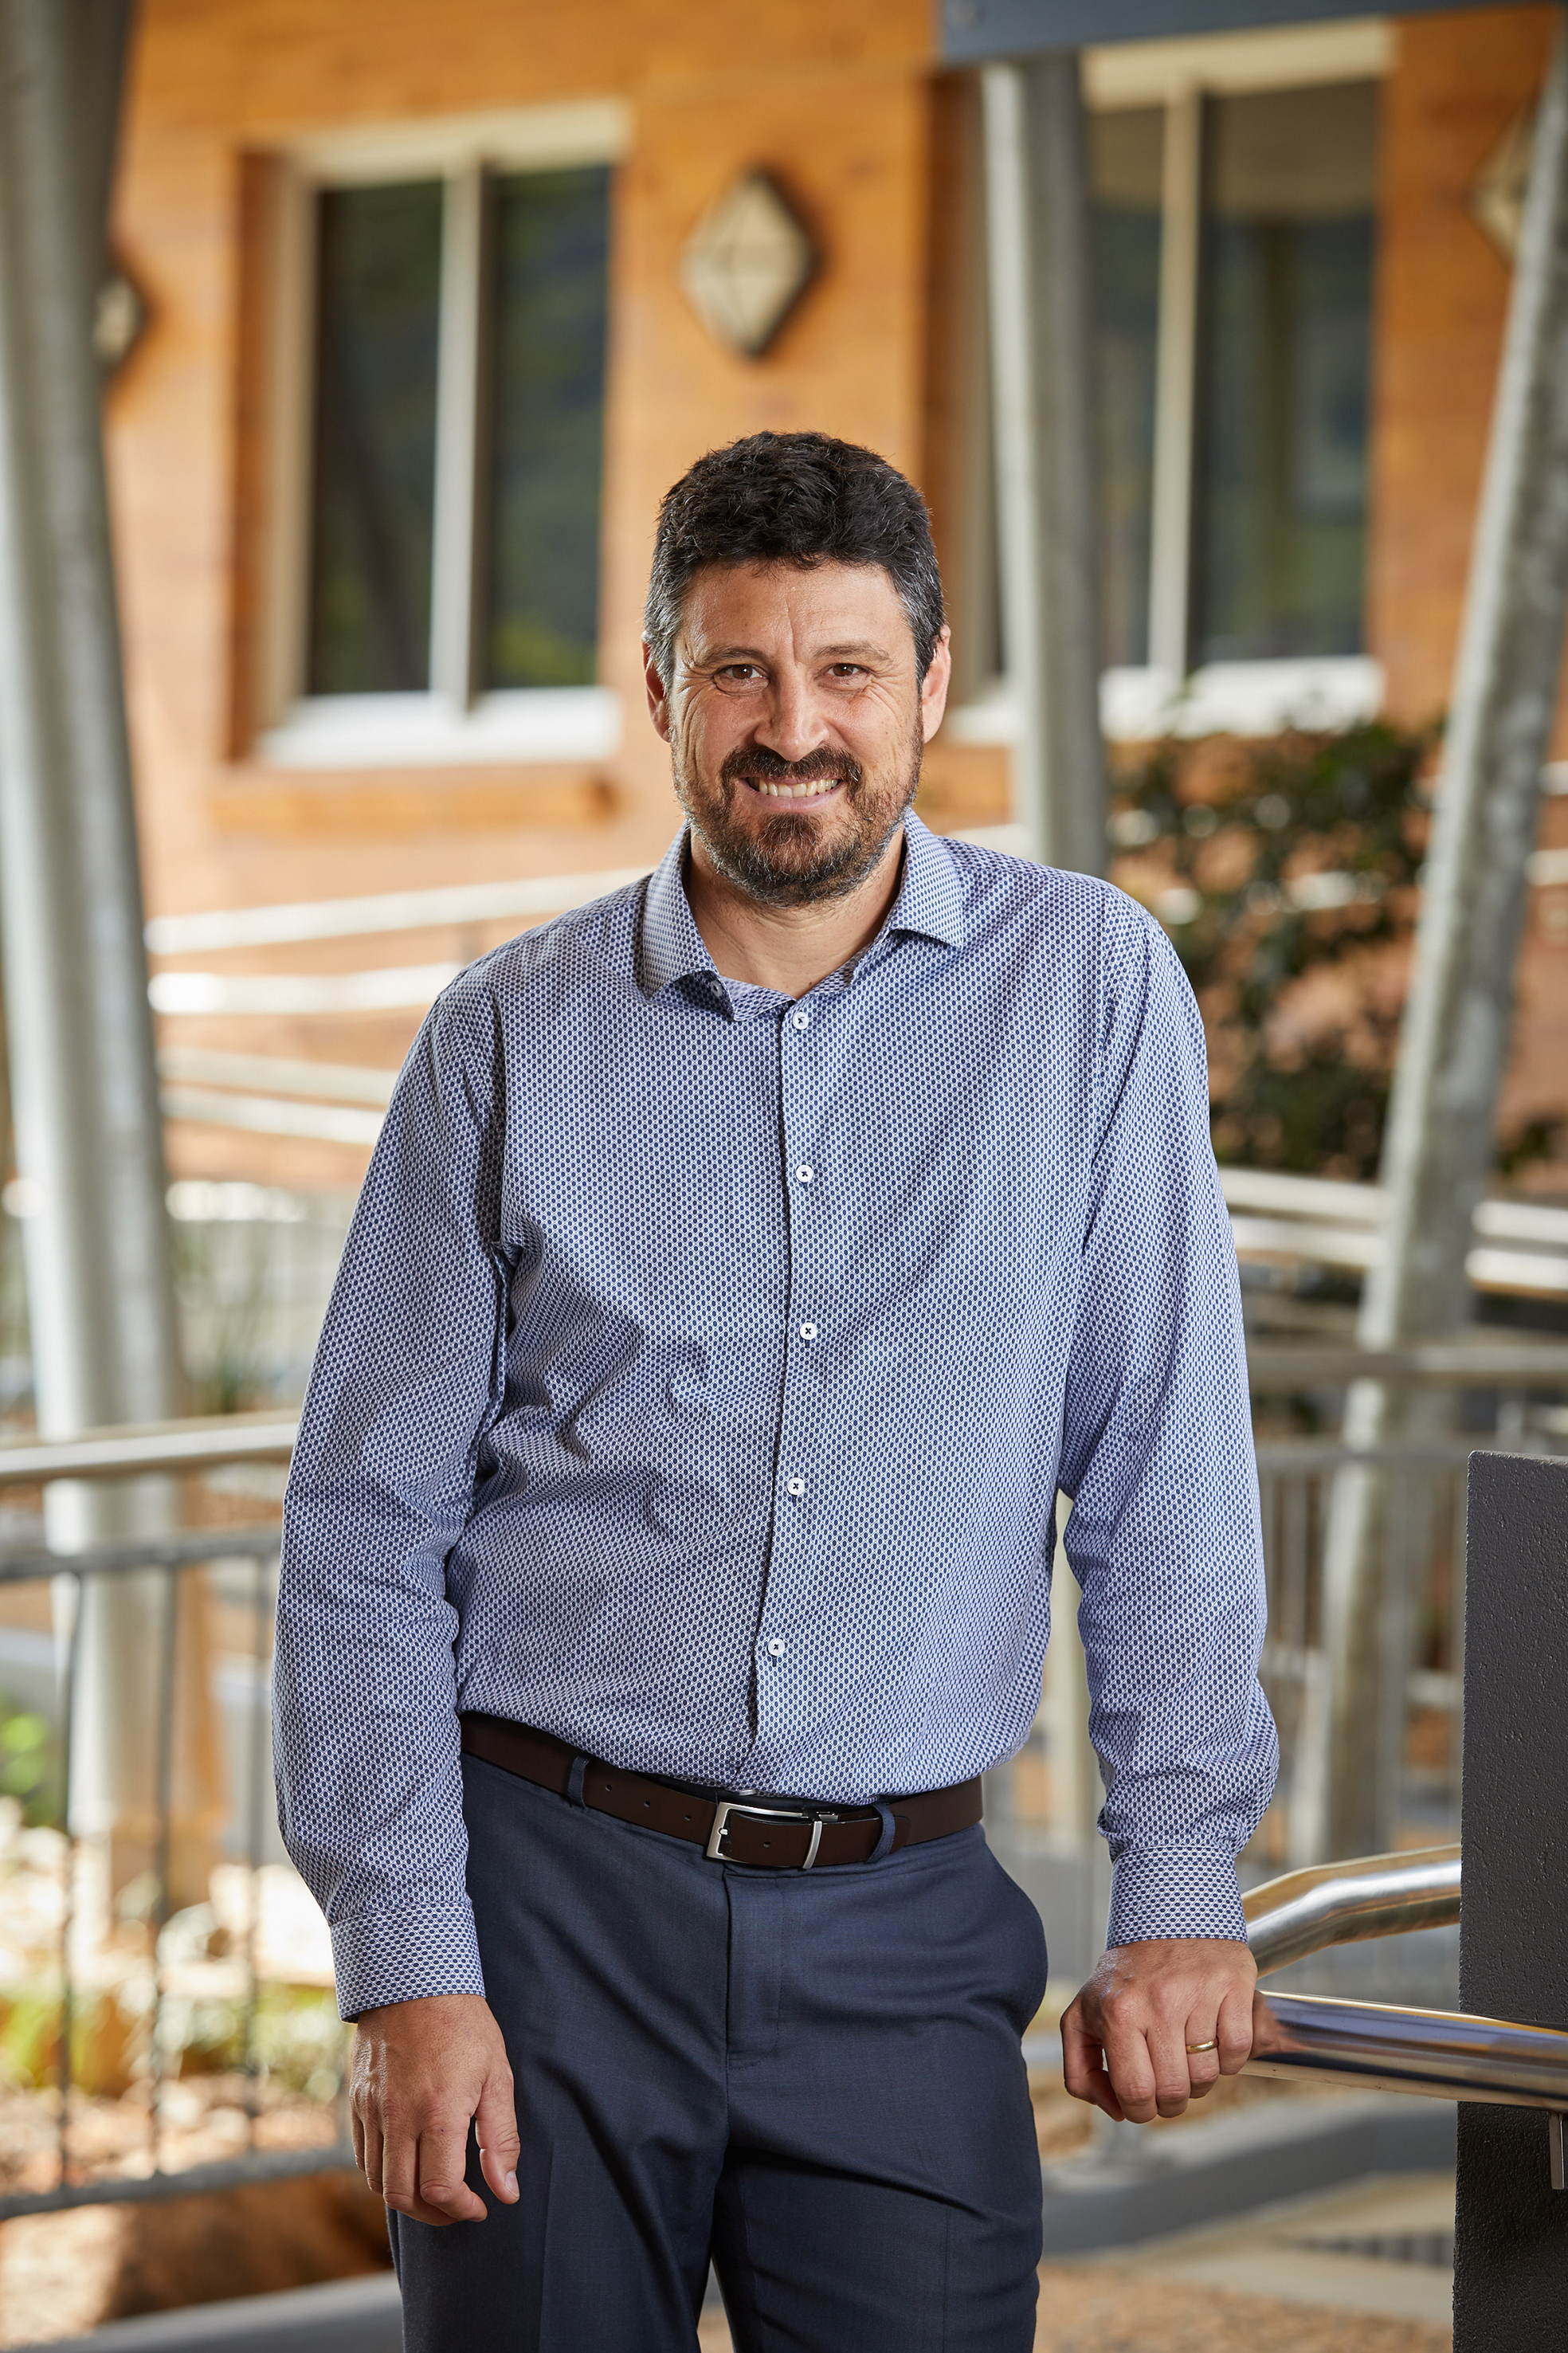 Professor Alex Loukas,Head of Research and Co-Founder at Paragen Bio.